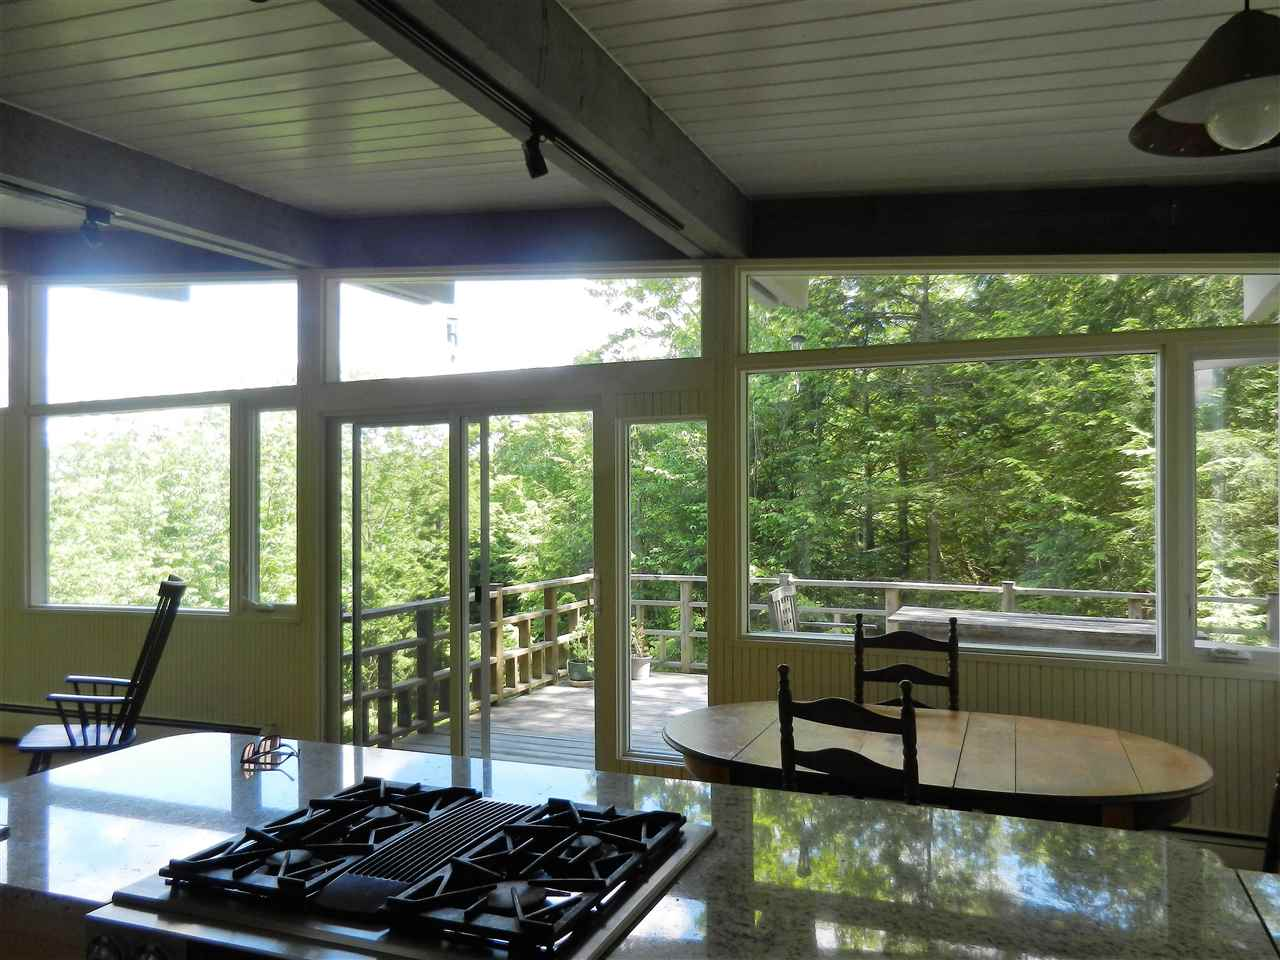 View across kitchen counter to back deck